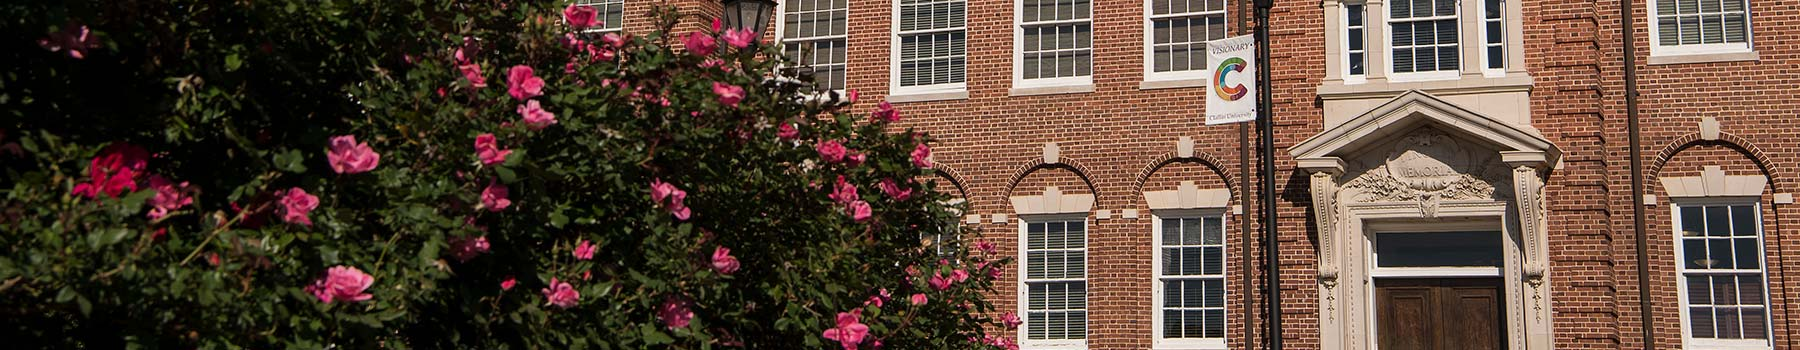 Tingley Memorial Hall exterior with rose bush